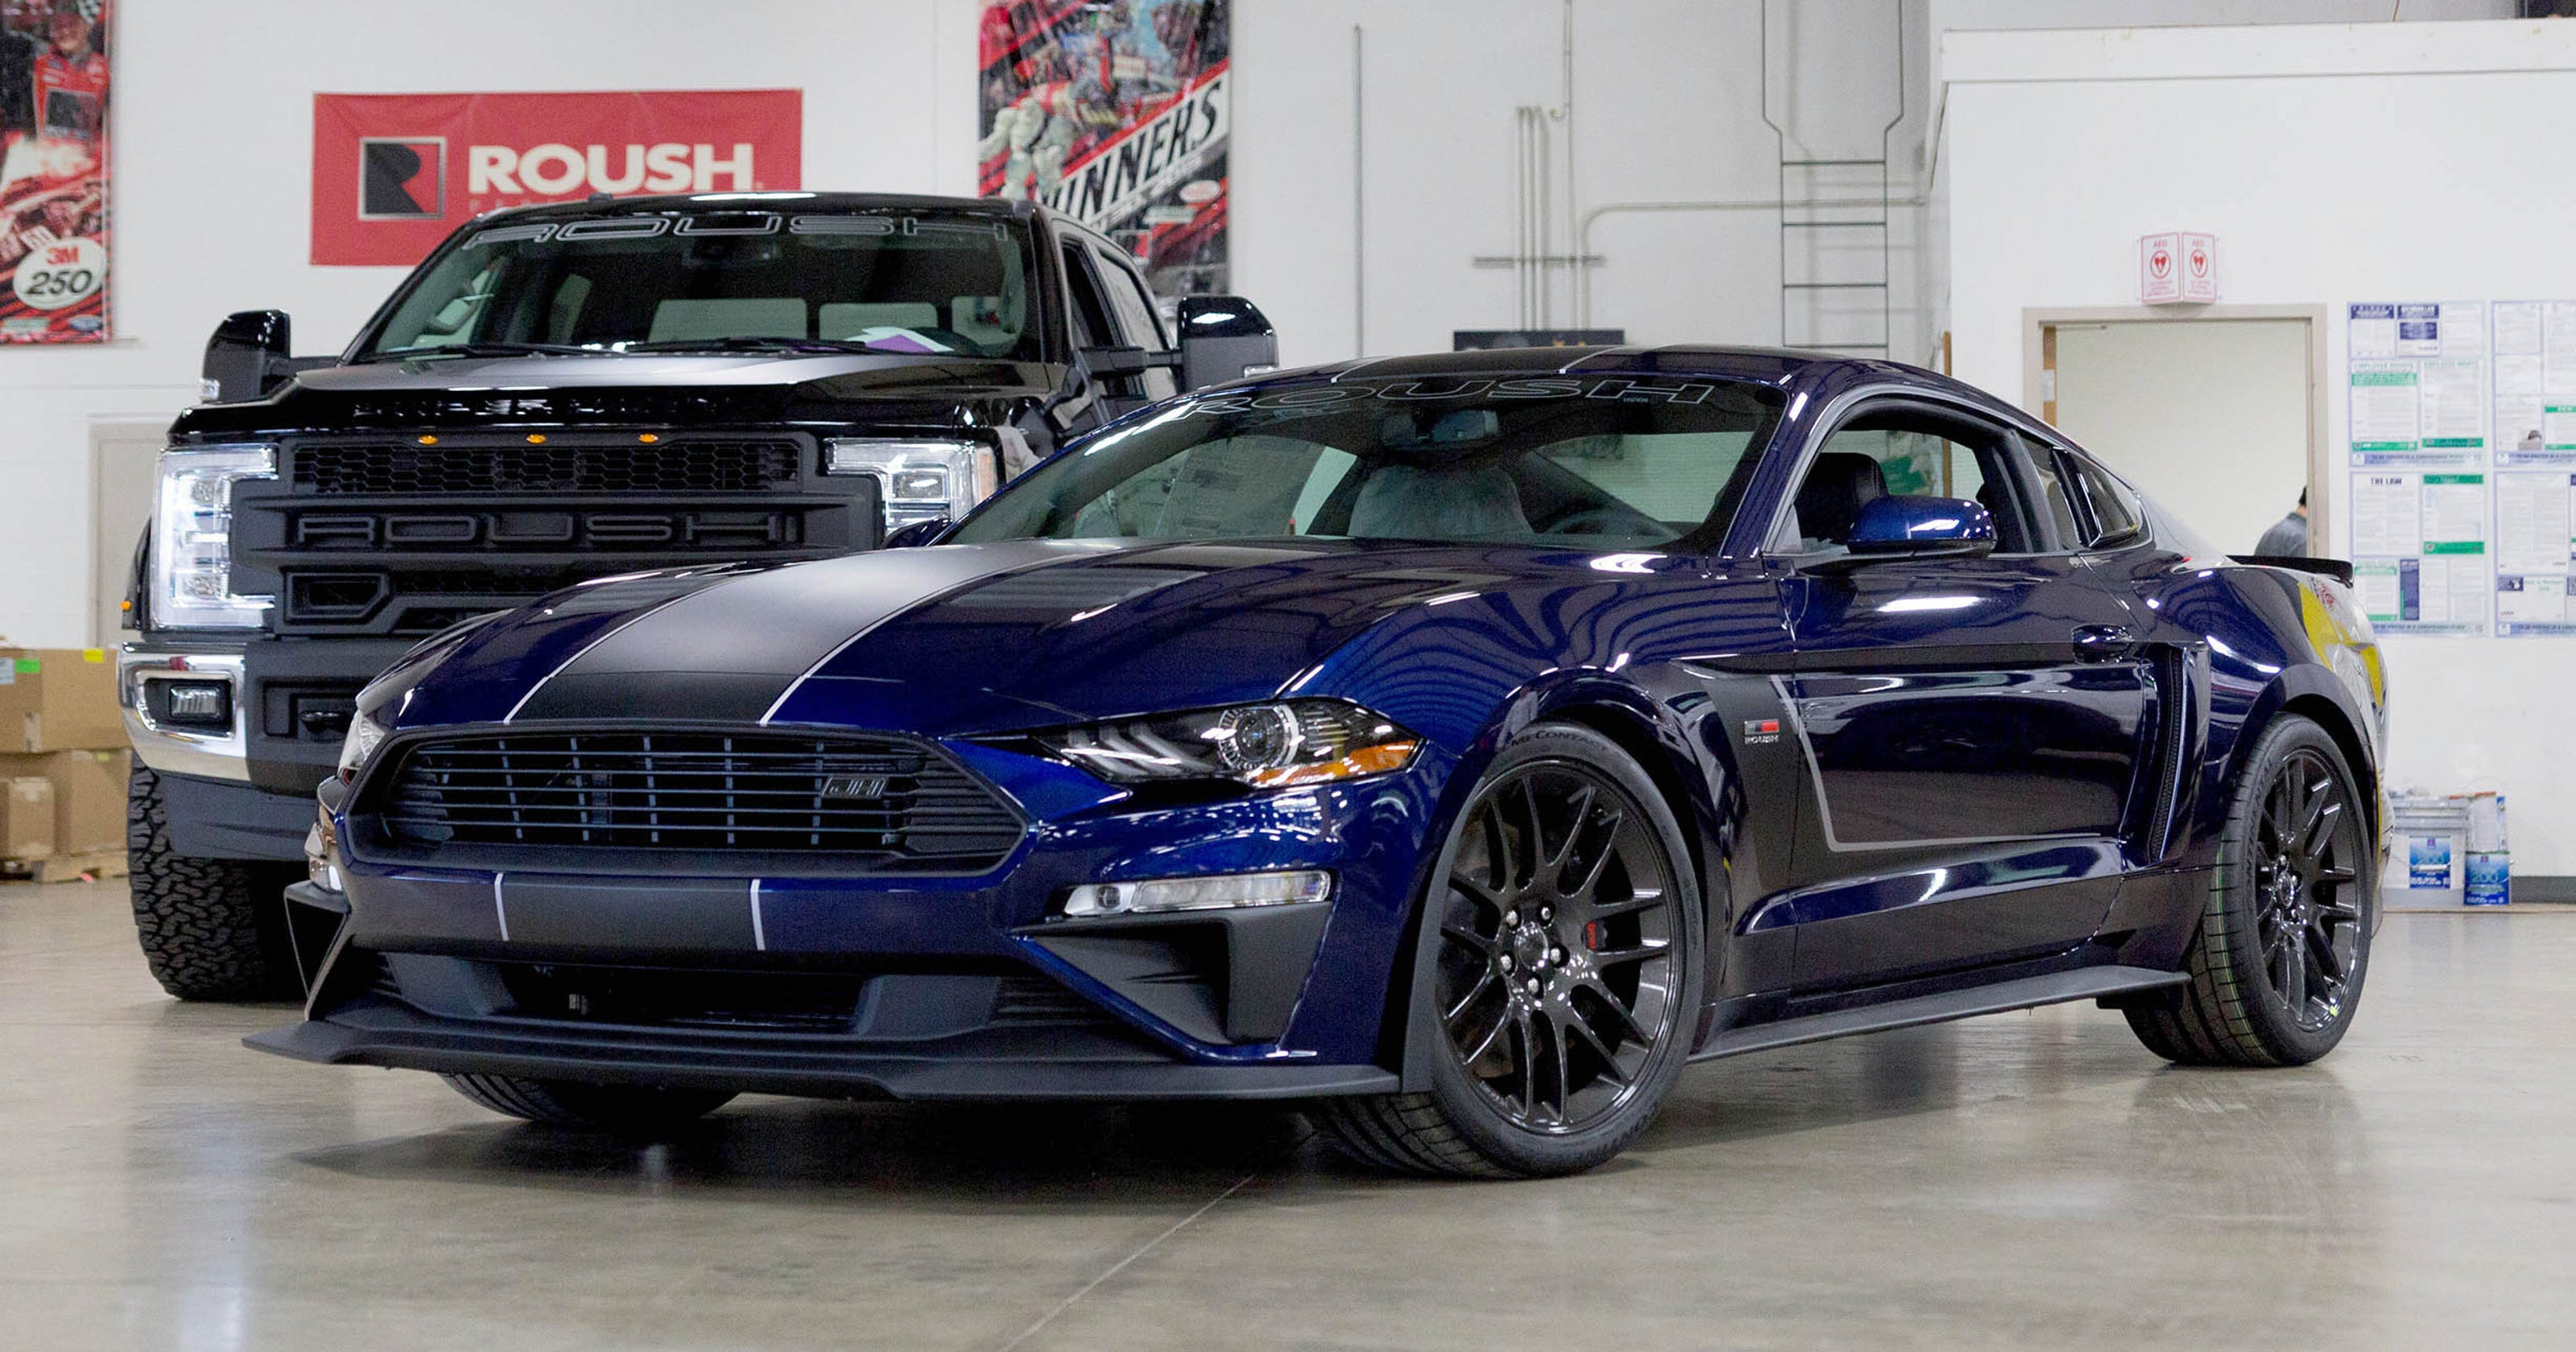 710 hp roush tuned jackhammer mustang hits the road